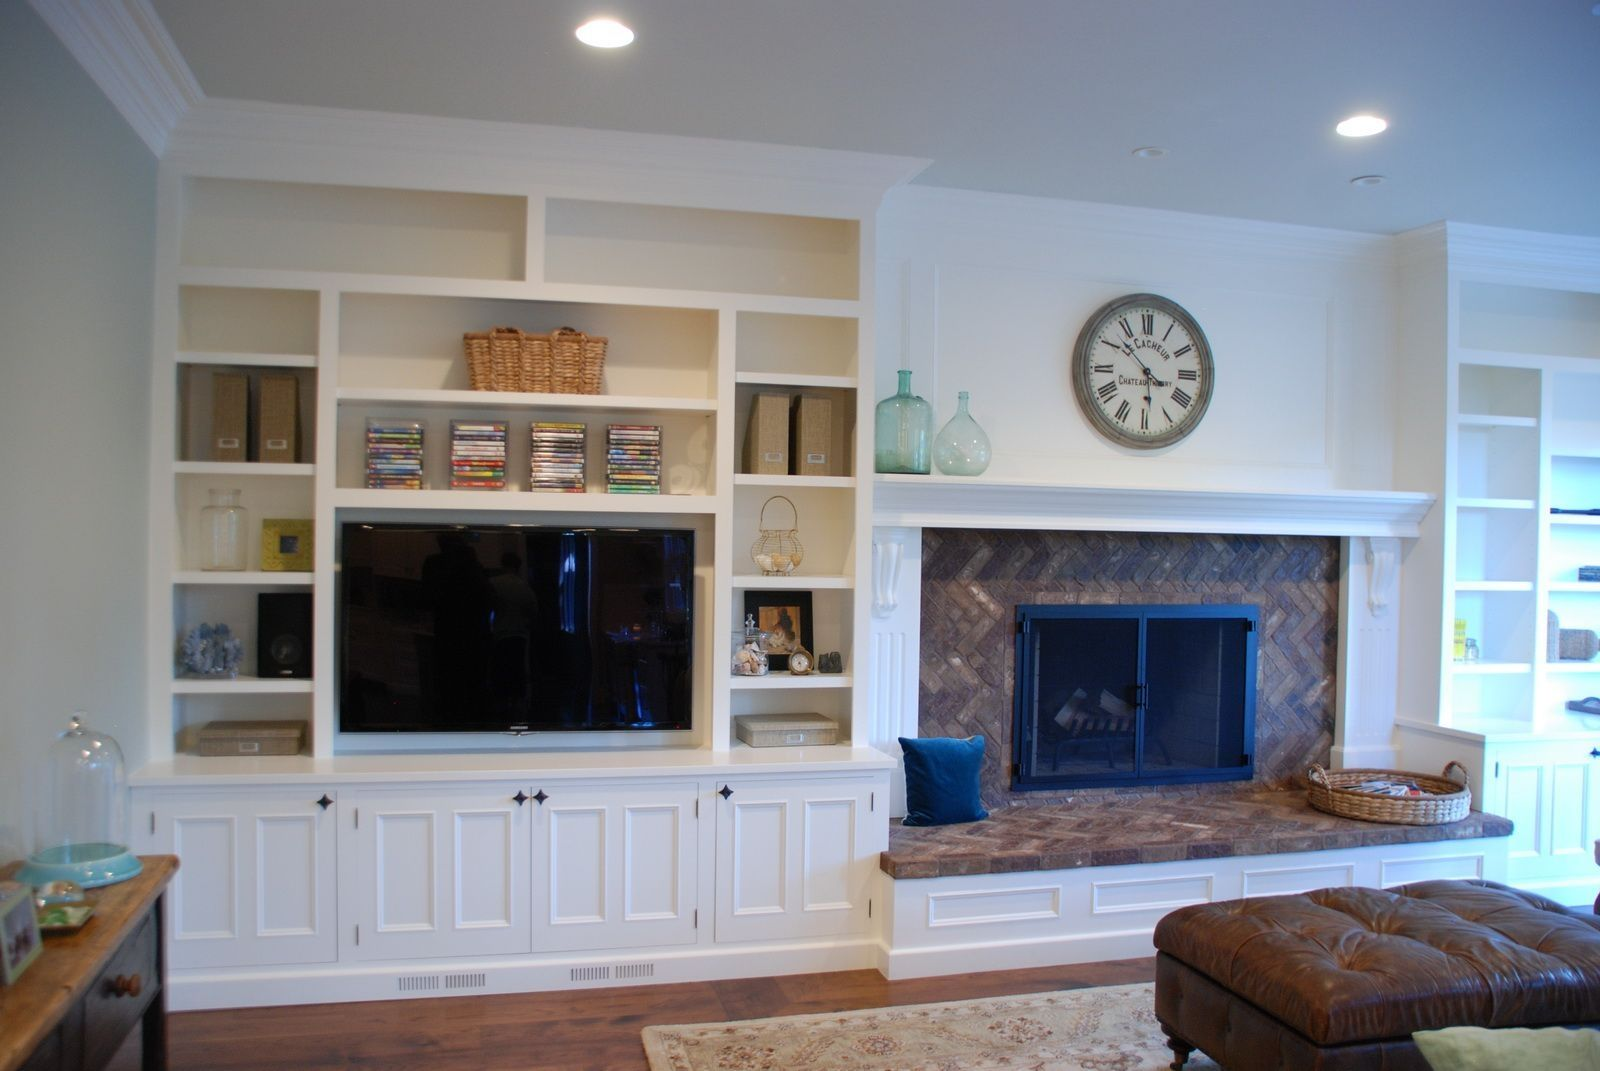 Tv Next To Fireplace Ideas Built In Stereo And Tv Cabinet Next To Fireplace 1600 1071 Fireplace Built Ins Built In Wall Units Built In Entertainment Center